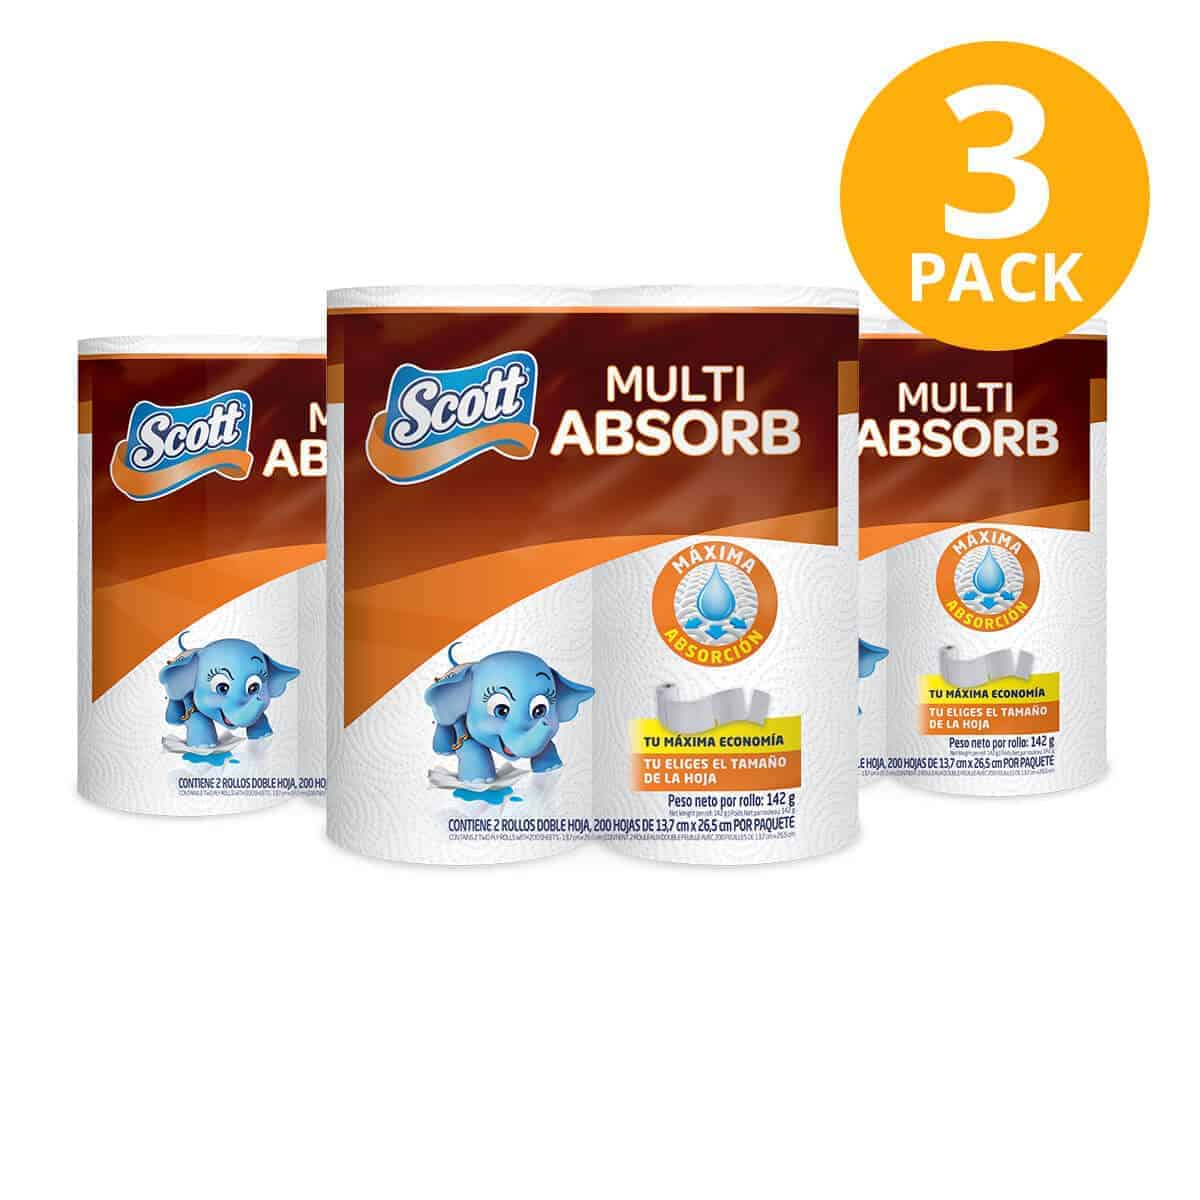 Scott Multi Absorb, Rollos Papel Toalla (Pack de 3 x 2)